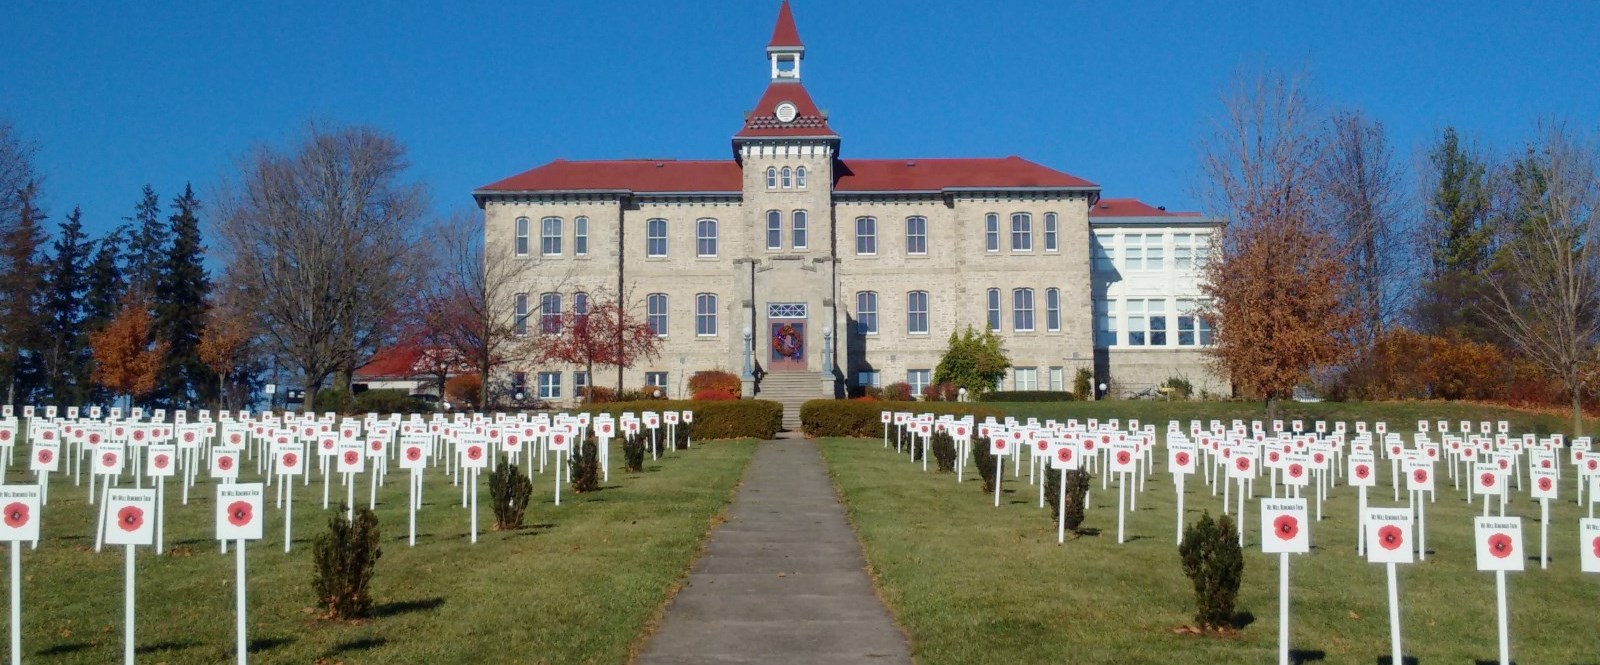 Front of Museum building with remembrance crosses